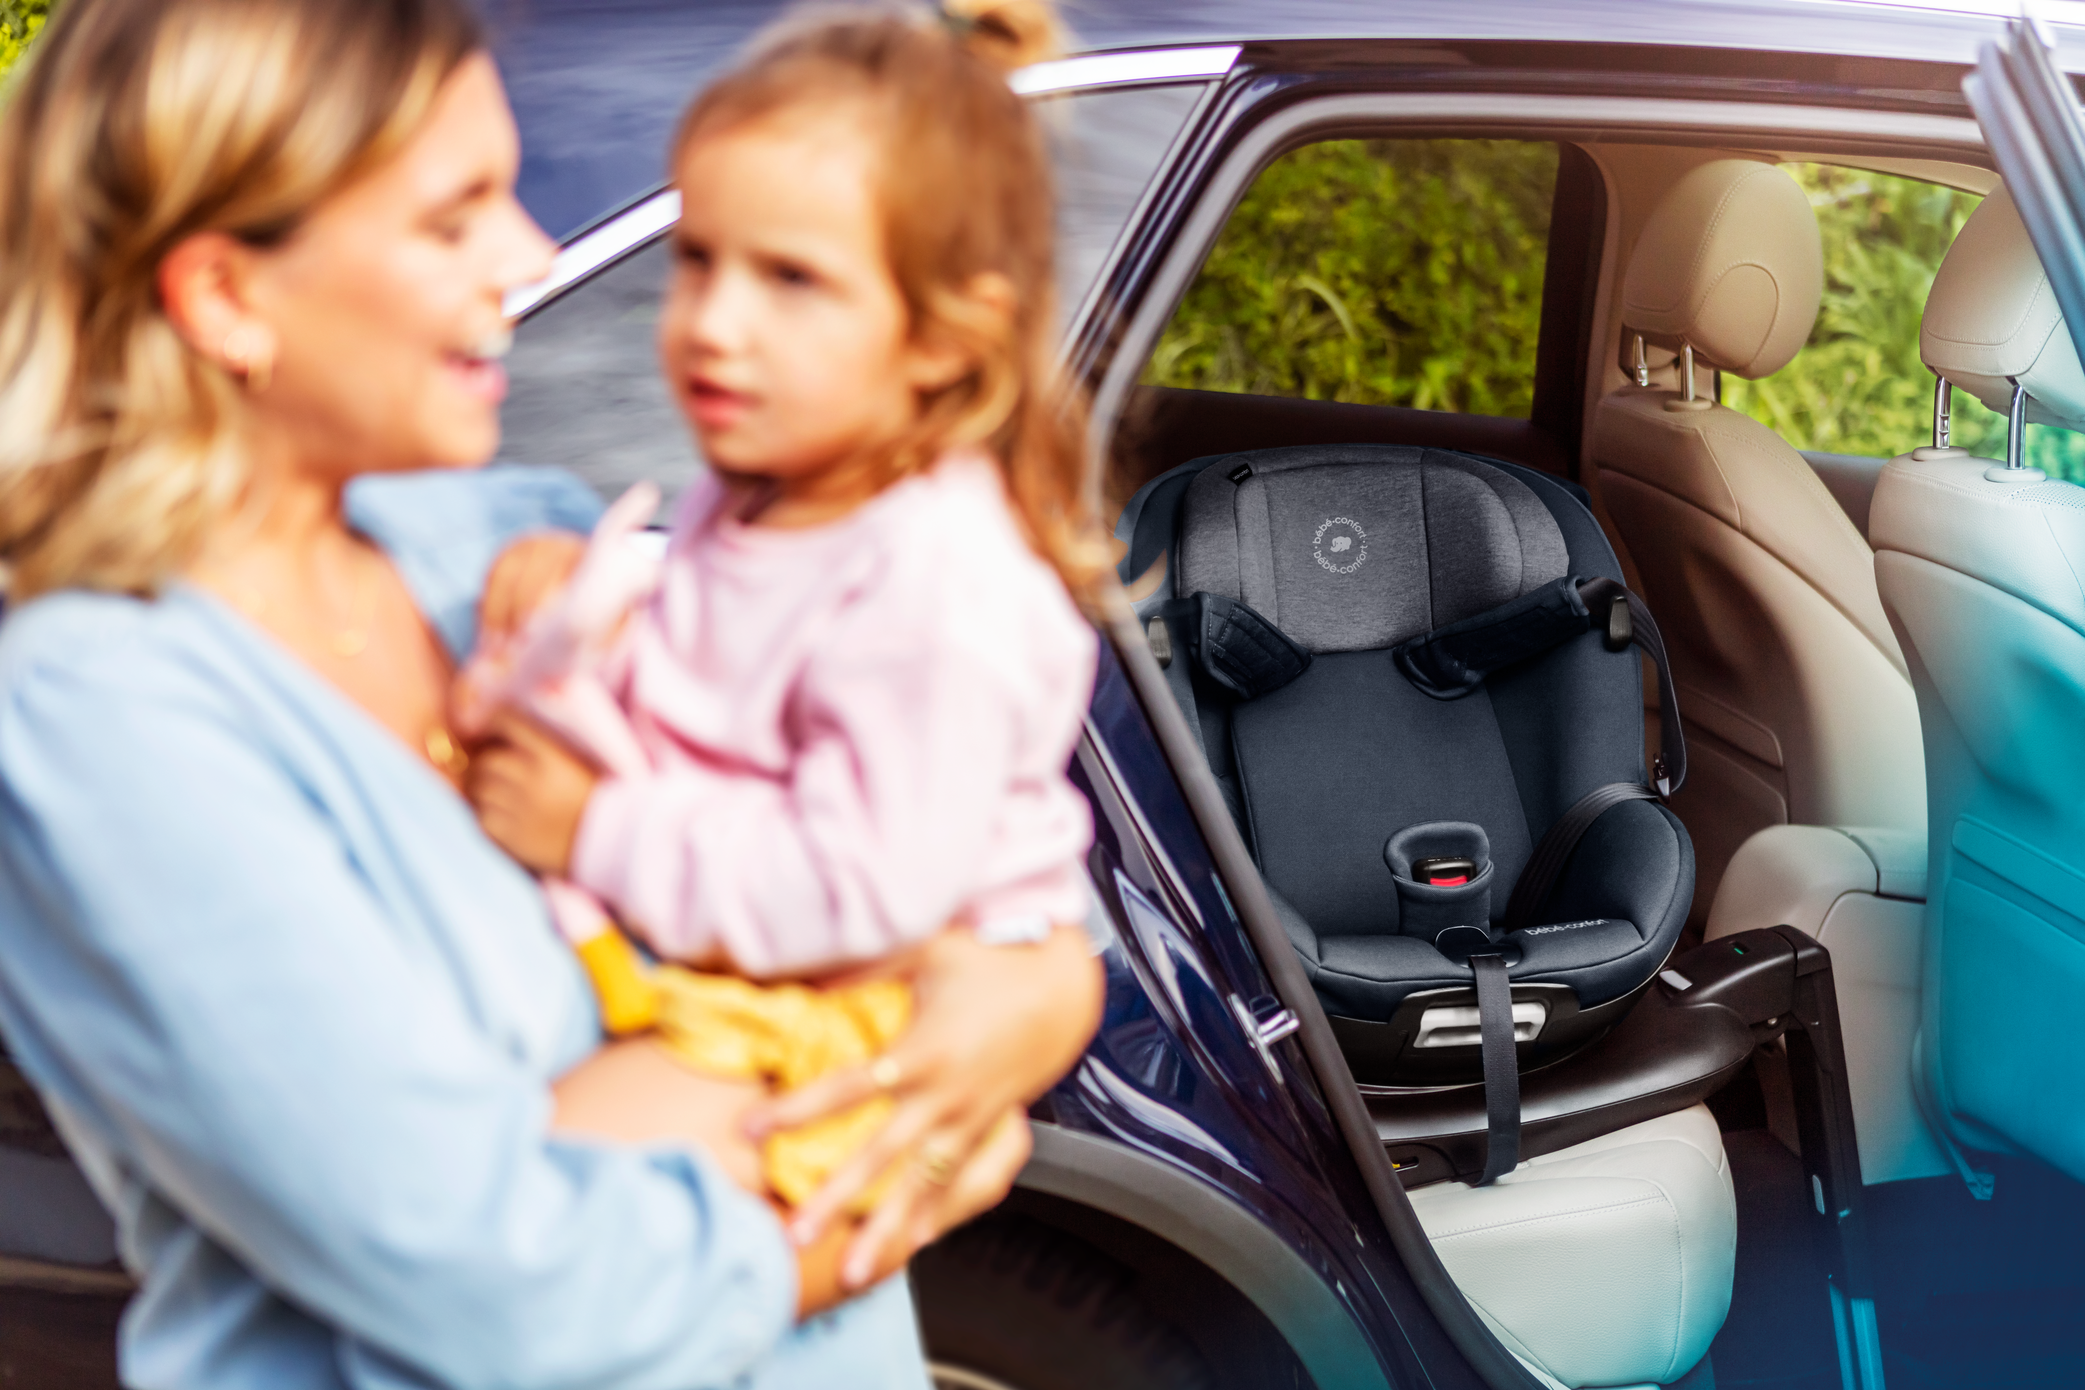 BBC8511_2020_Bebeconfort_carseat_Mica_Lifestyle_Summer_momcuddlingwithtoddlerseatinbackground2_Landscape_RGB